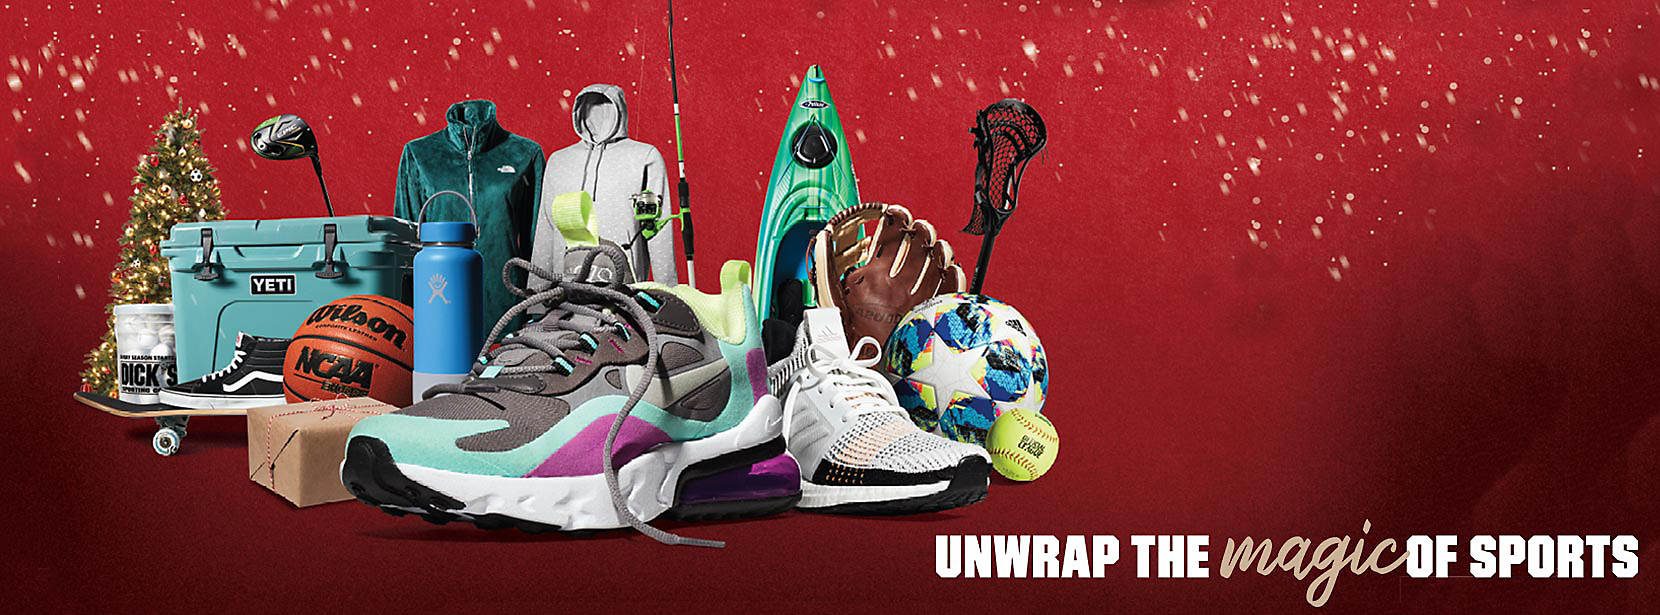 Festive collection of favorite holiday gifts under the banner of Unwrap the Magic of Sports.